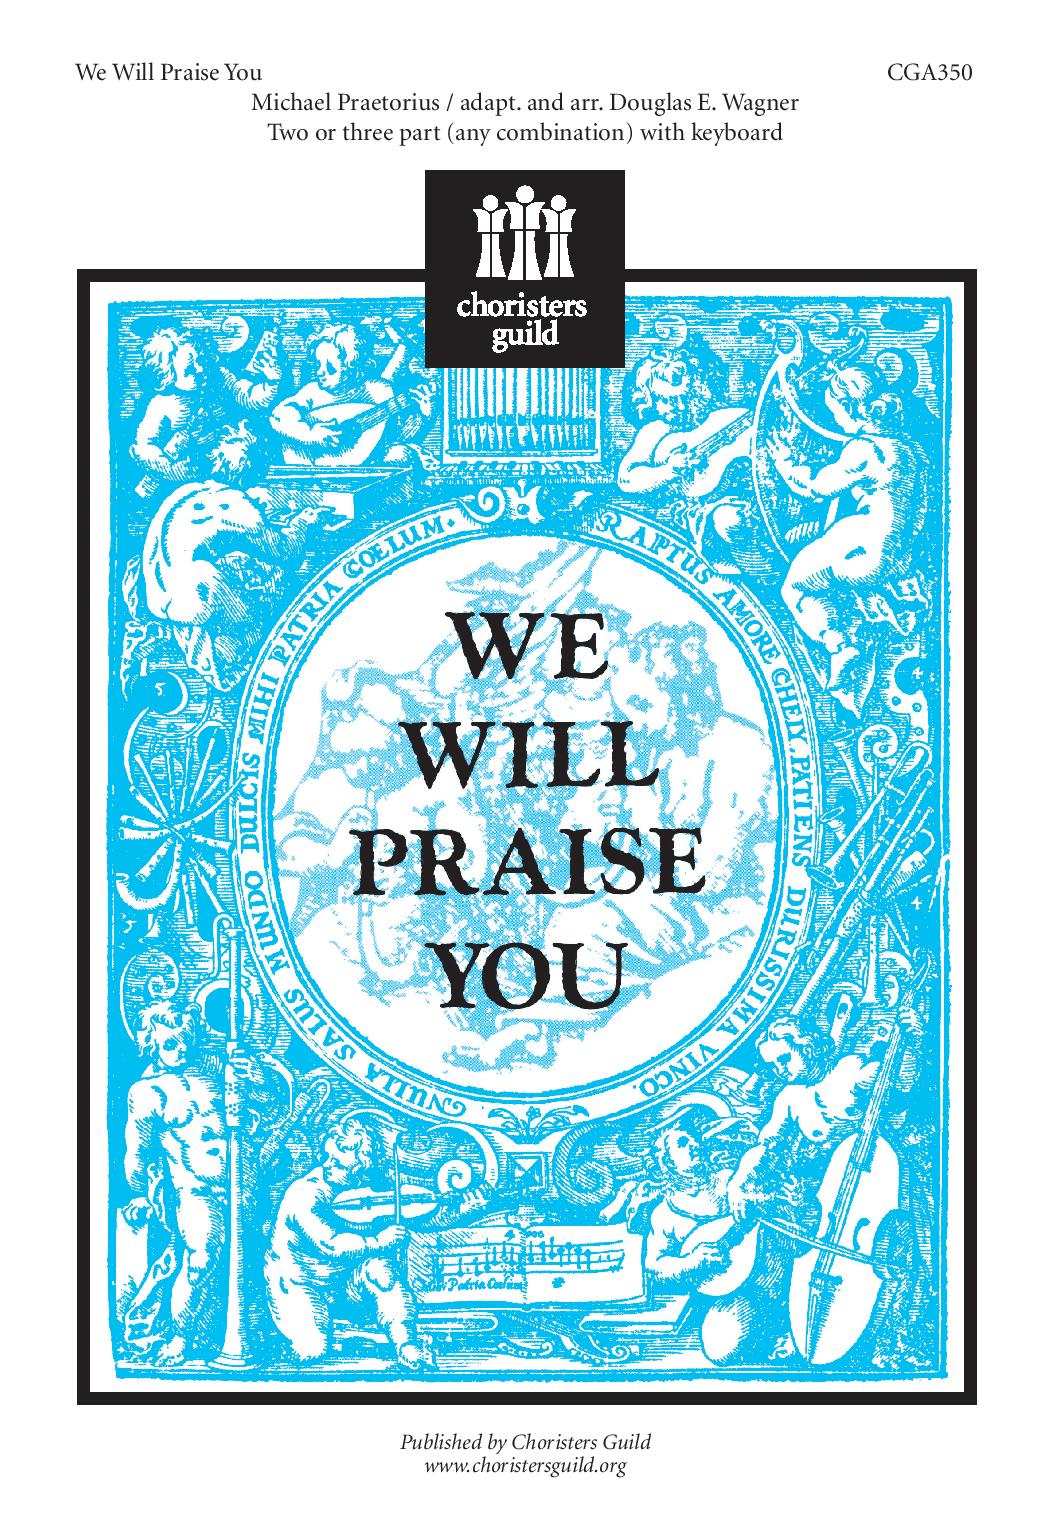 We Will Praise You